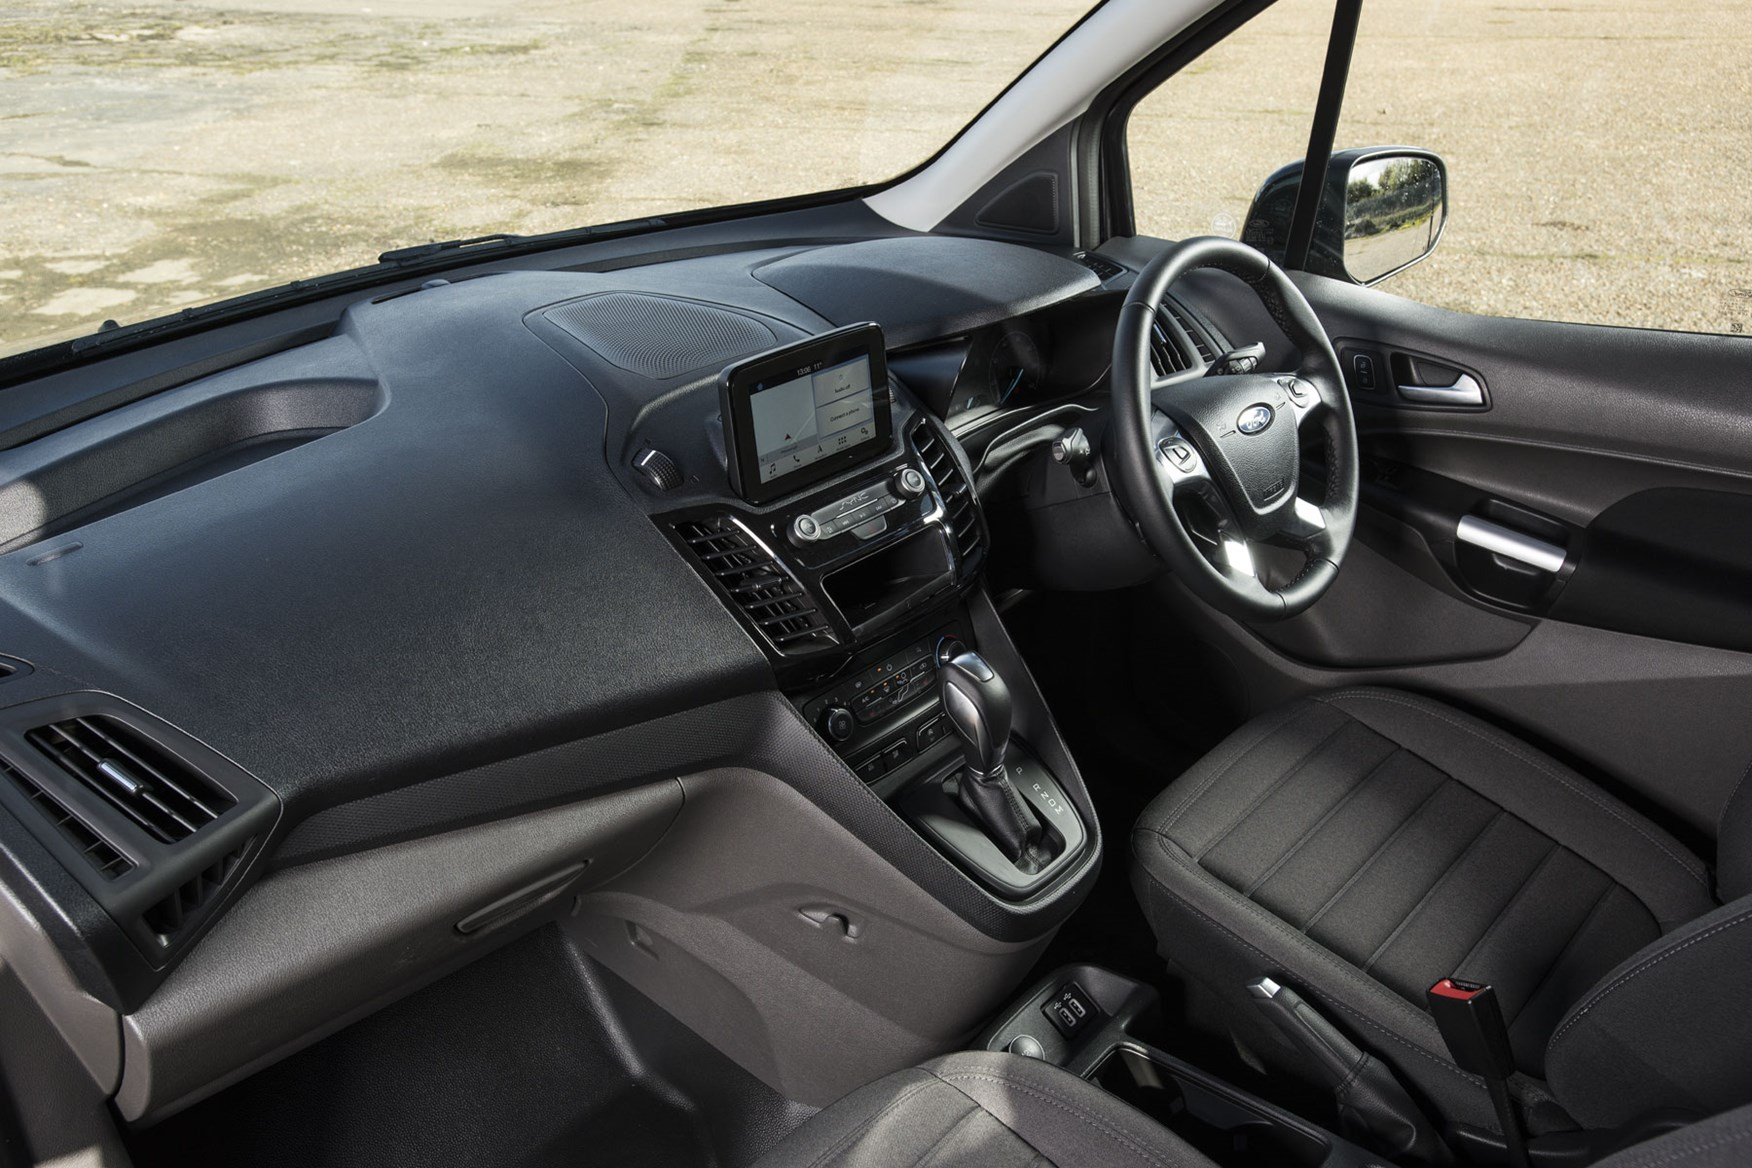 Ford Transit Connect automatic review - cab interior, wide view, 2019